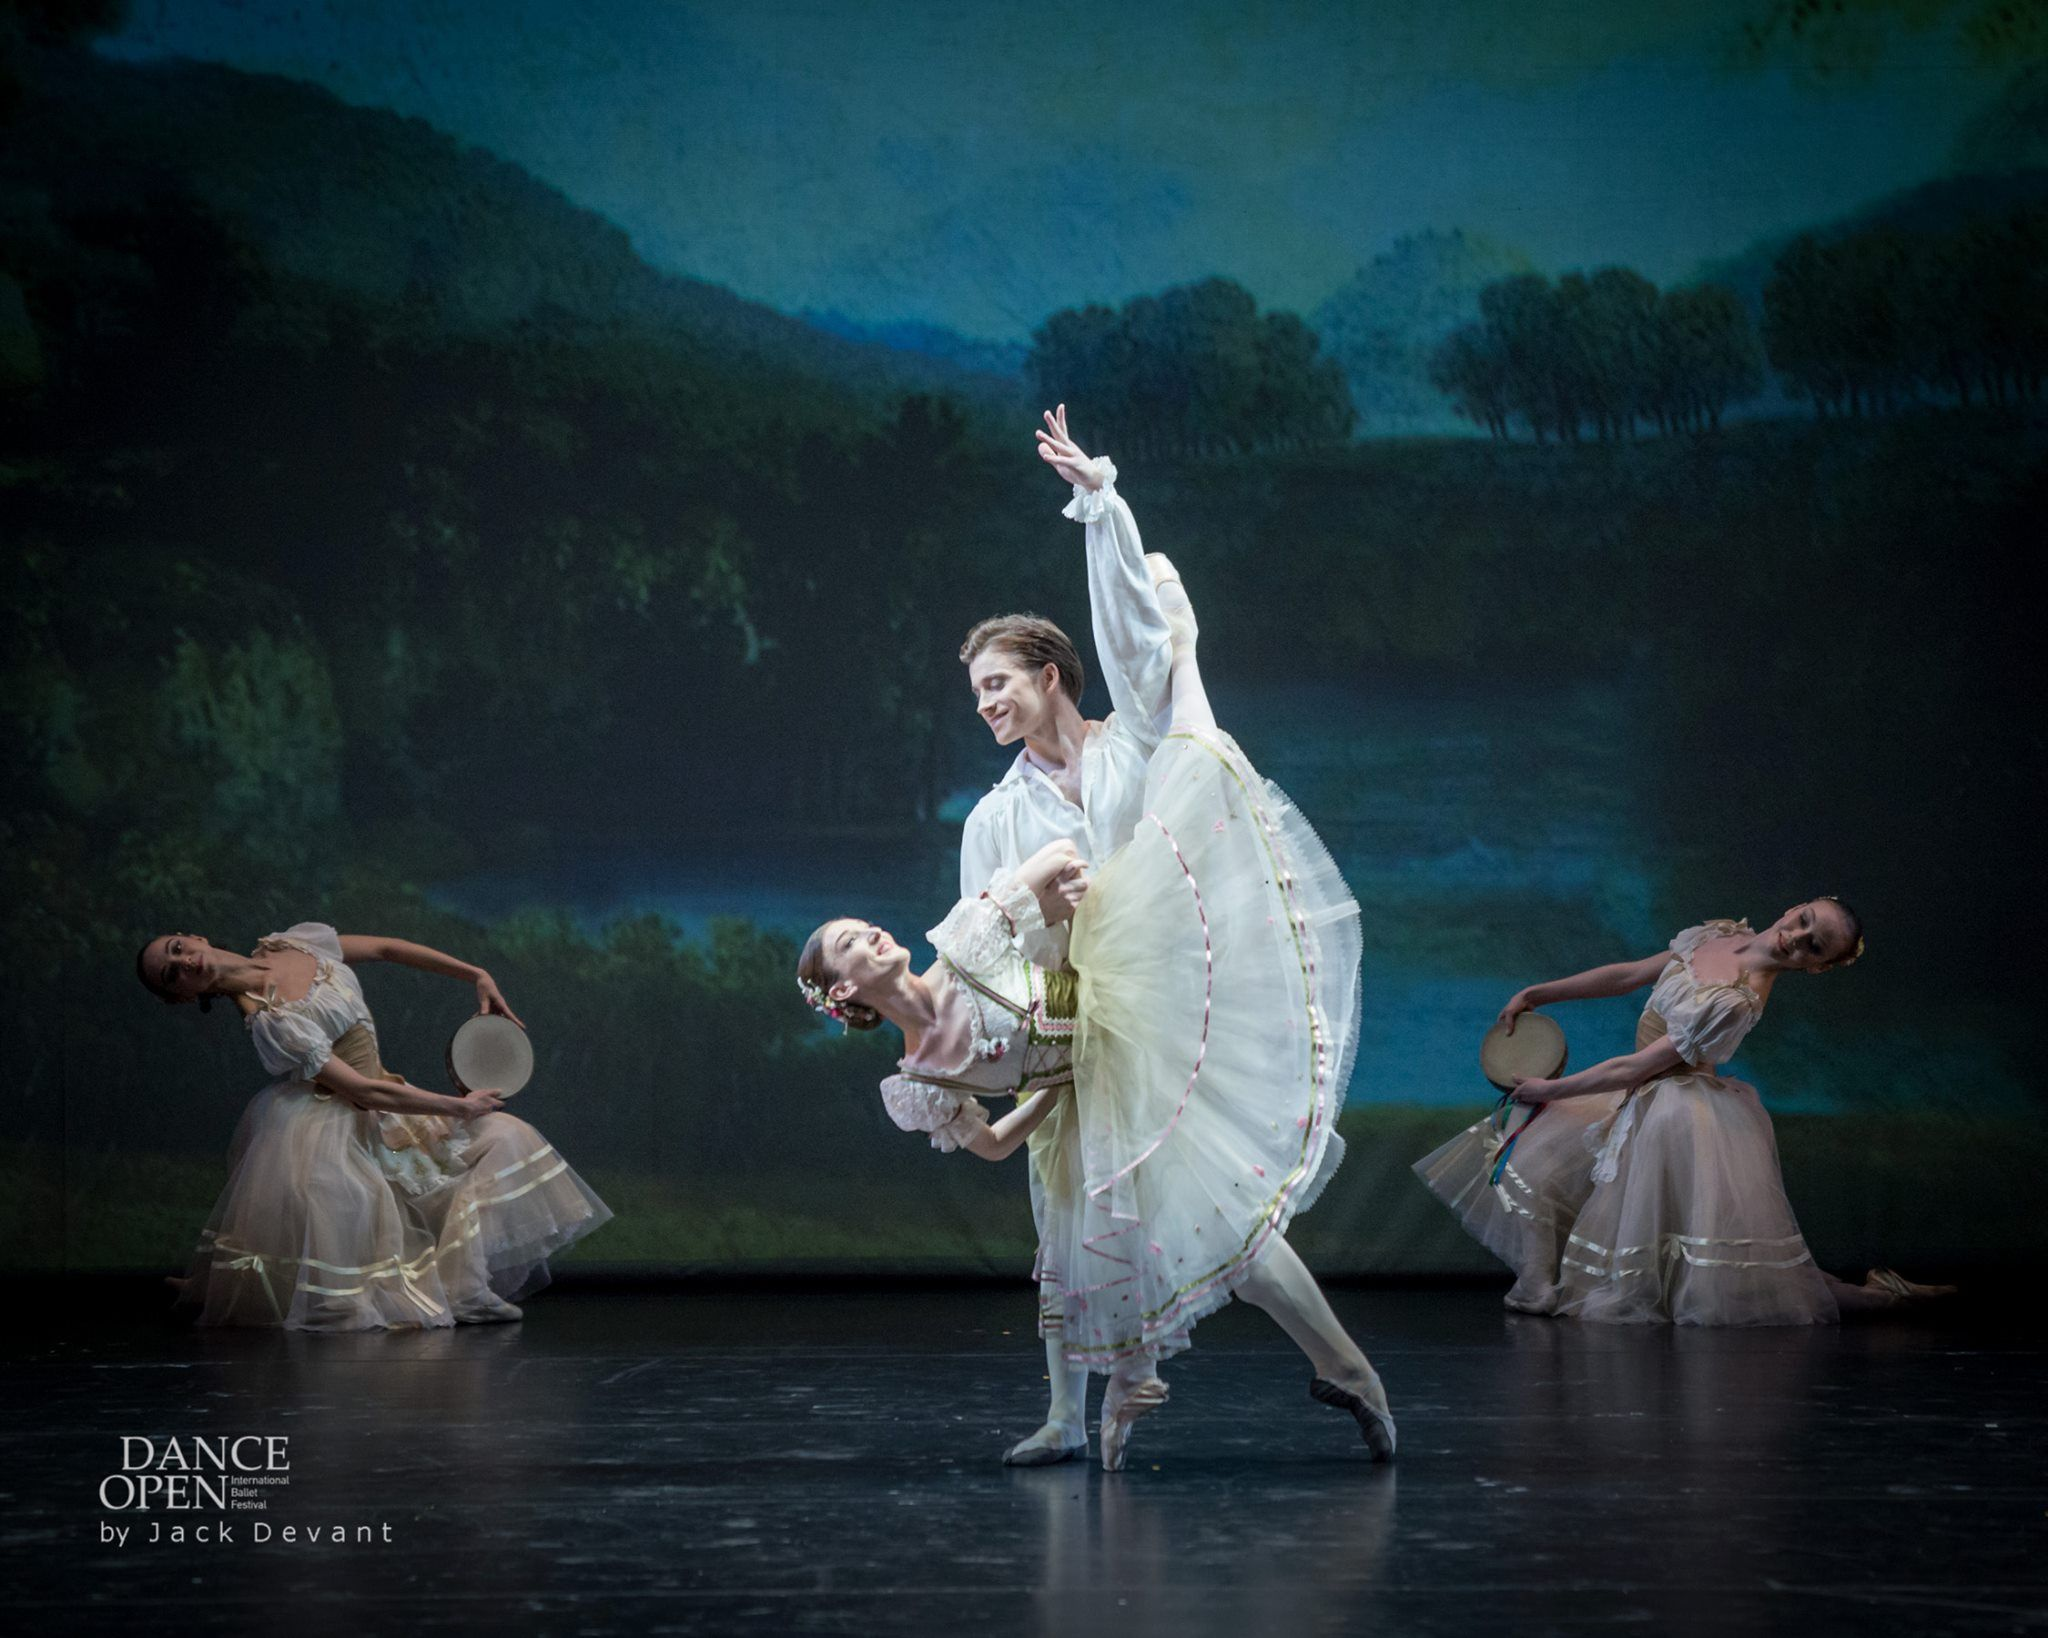 Jaime Crandall and Alban Lendorf in The Flower Festival in Genzano pdd - Photo by Jack Devant